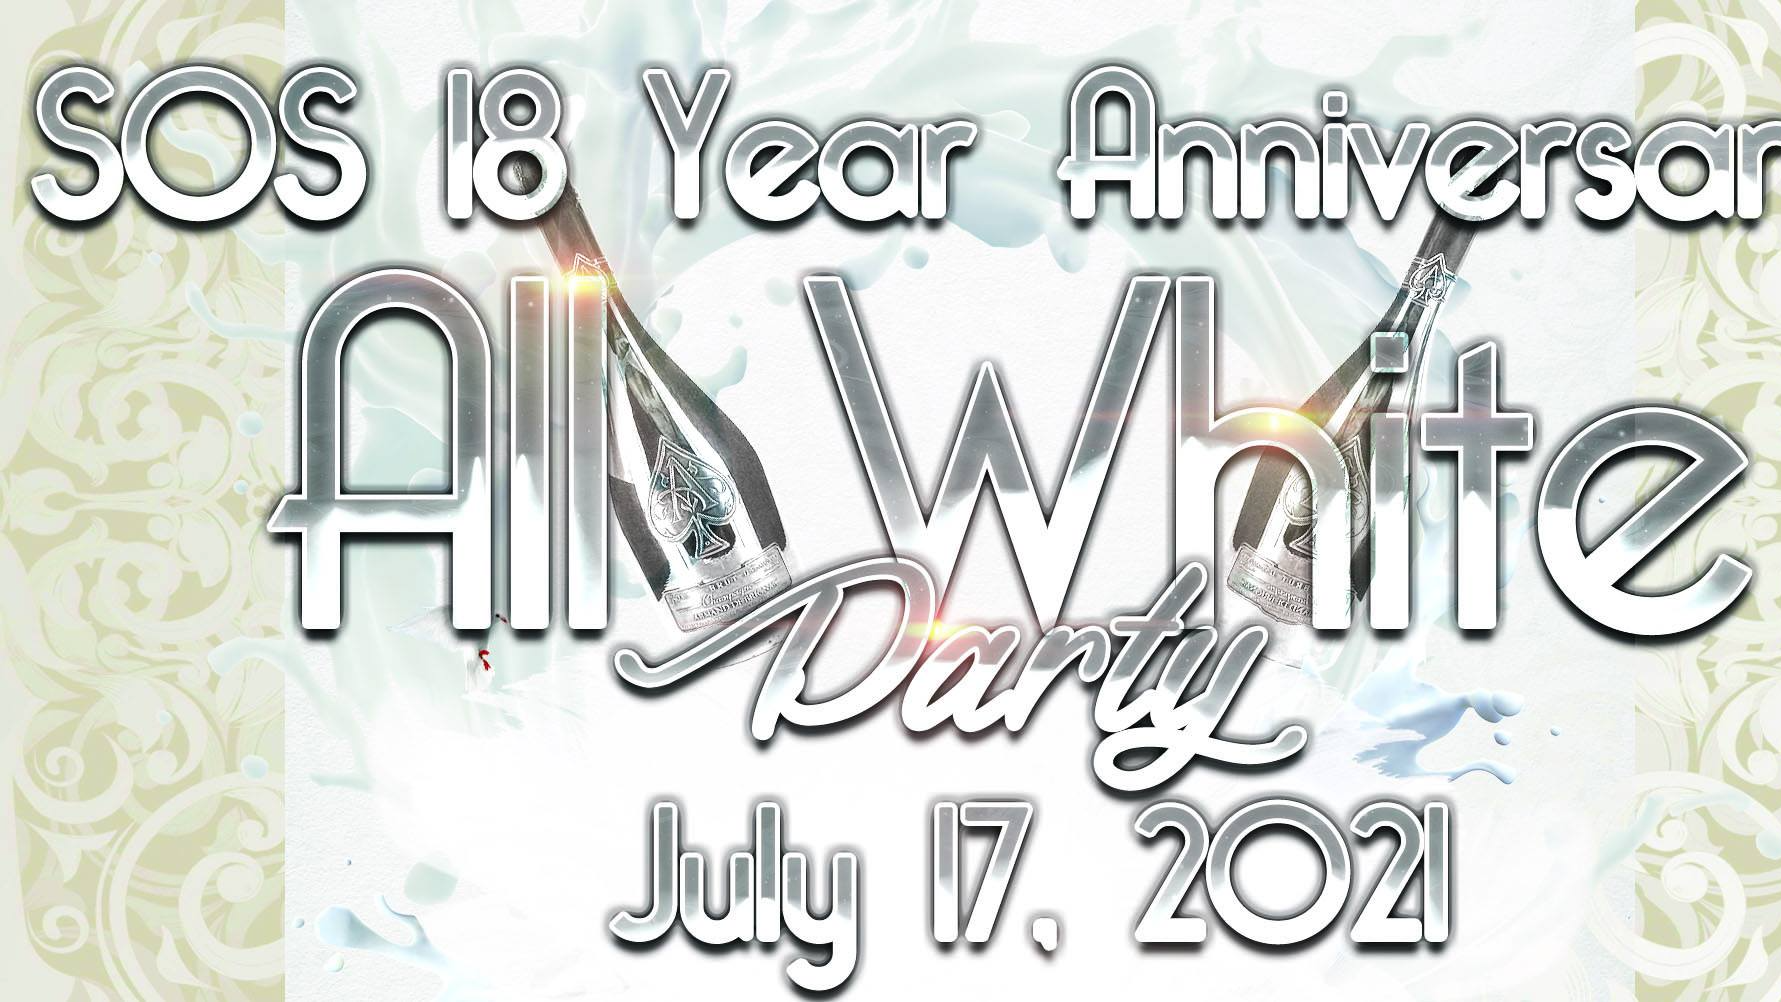 Photo for Stuck On Salsa 18 Year Anniversary & All White Party Produced by DCBXLive.com on ViewStub